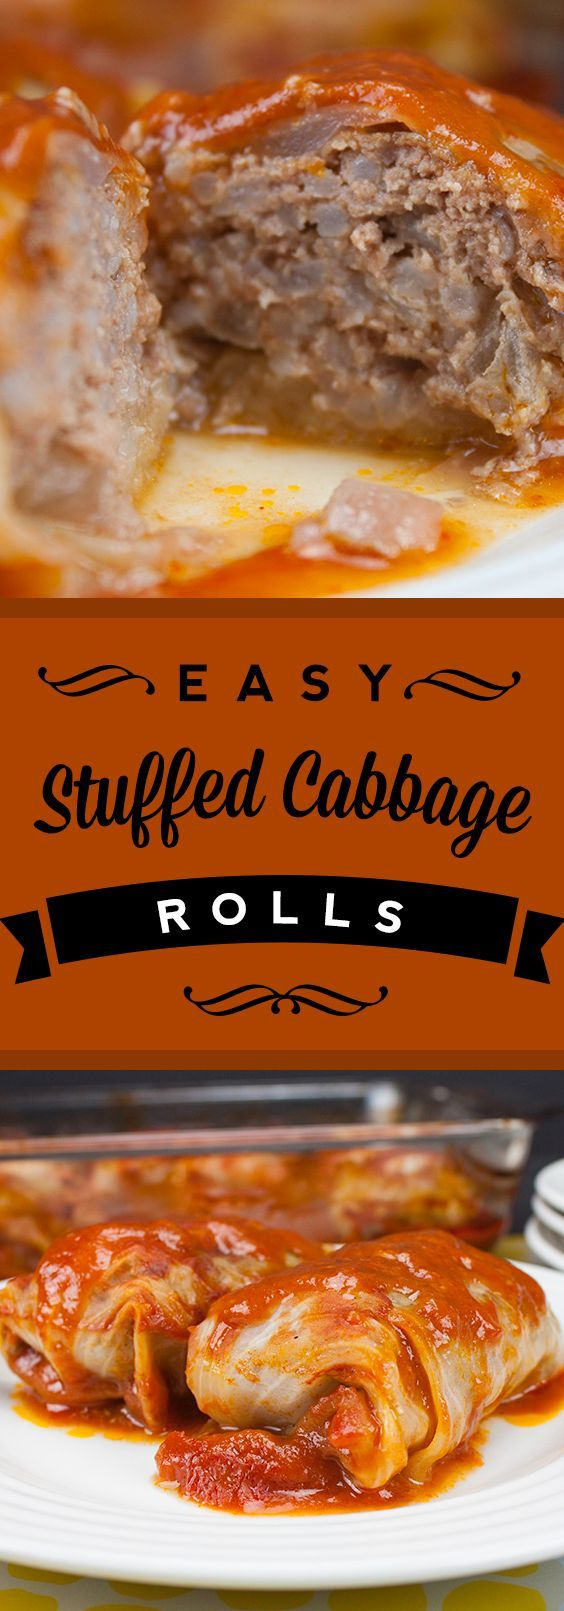 Easy Stuffed Cabbage Rolls - This dish will change your mind about cabbage!